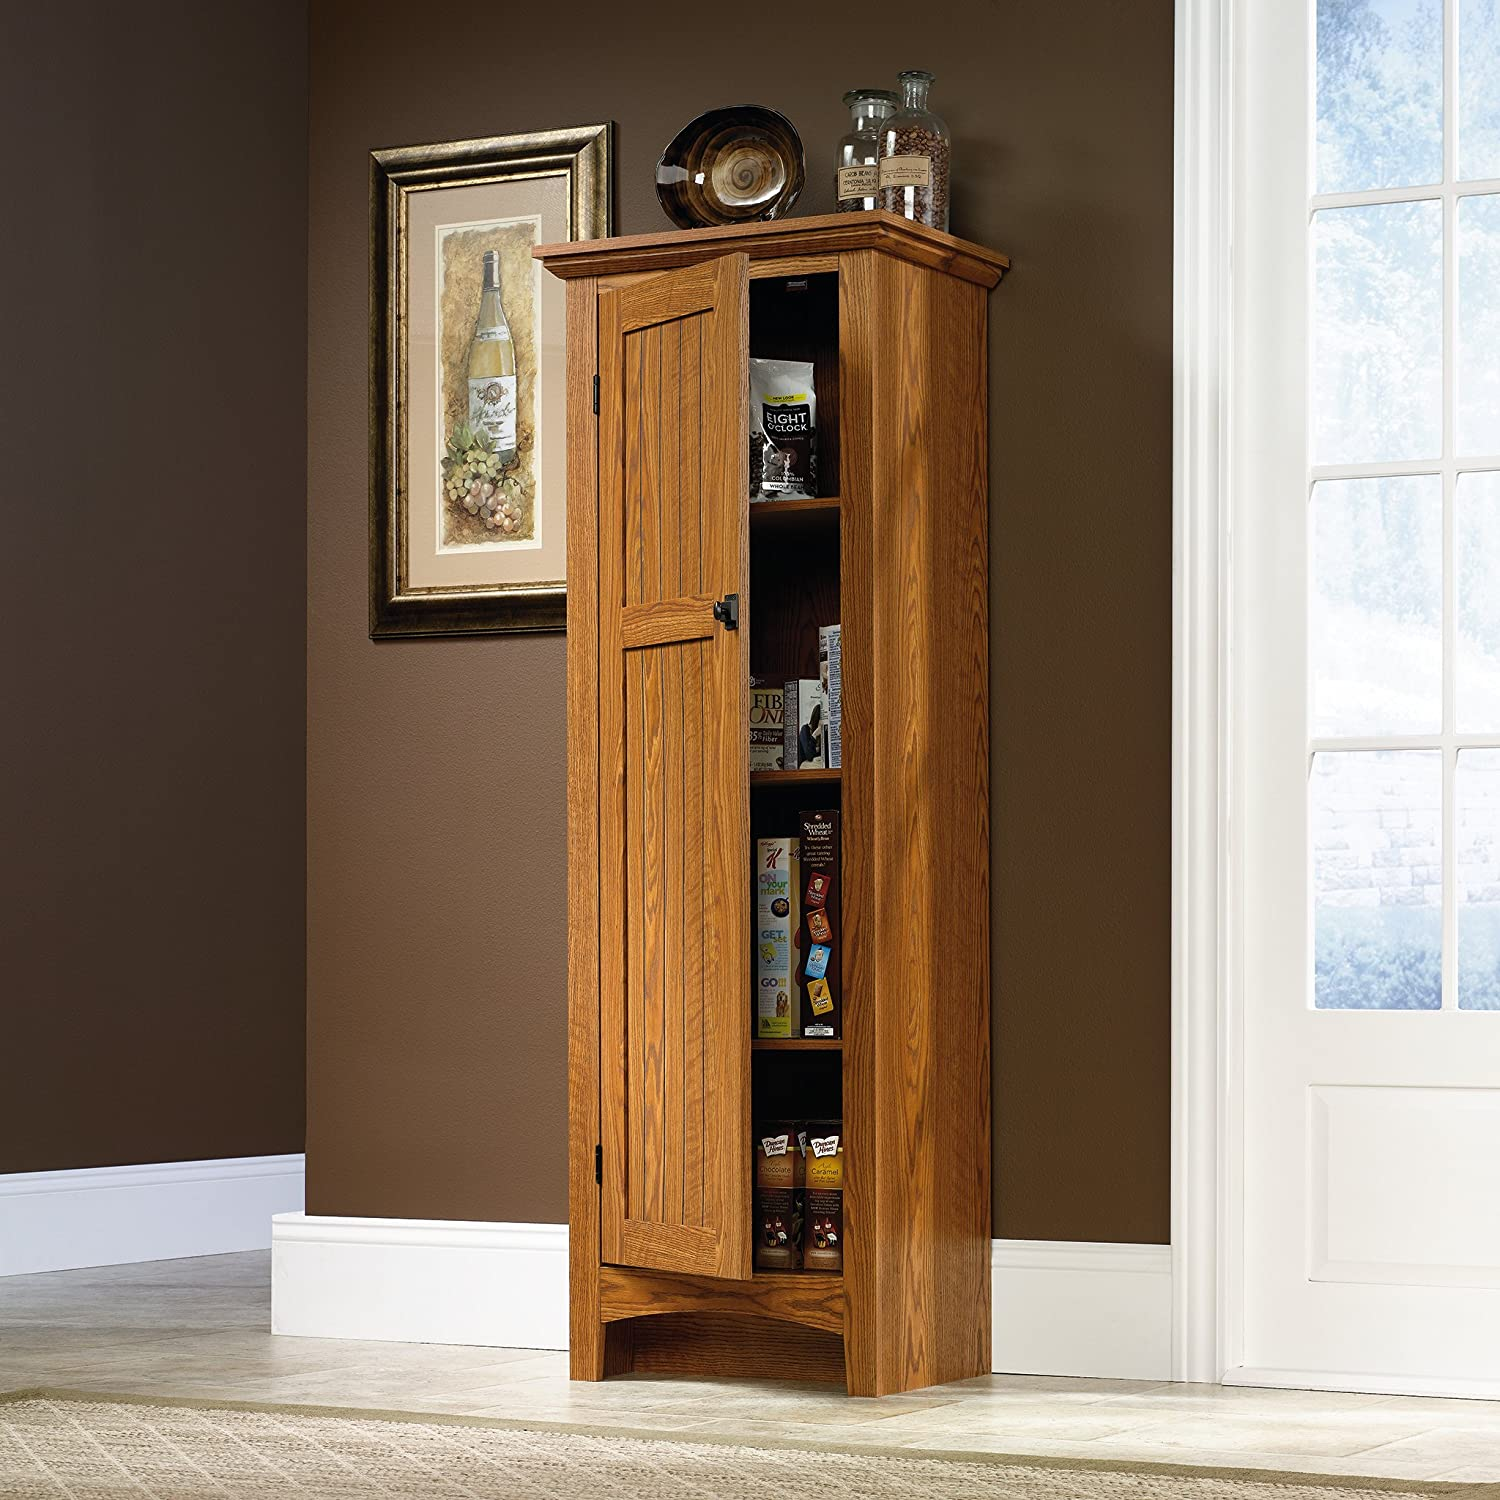 Amazon.com: Sauder Summer Home Pantry, Carolina Oak Finish ...